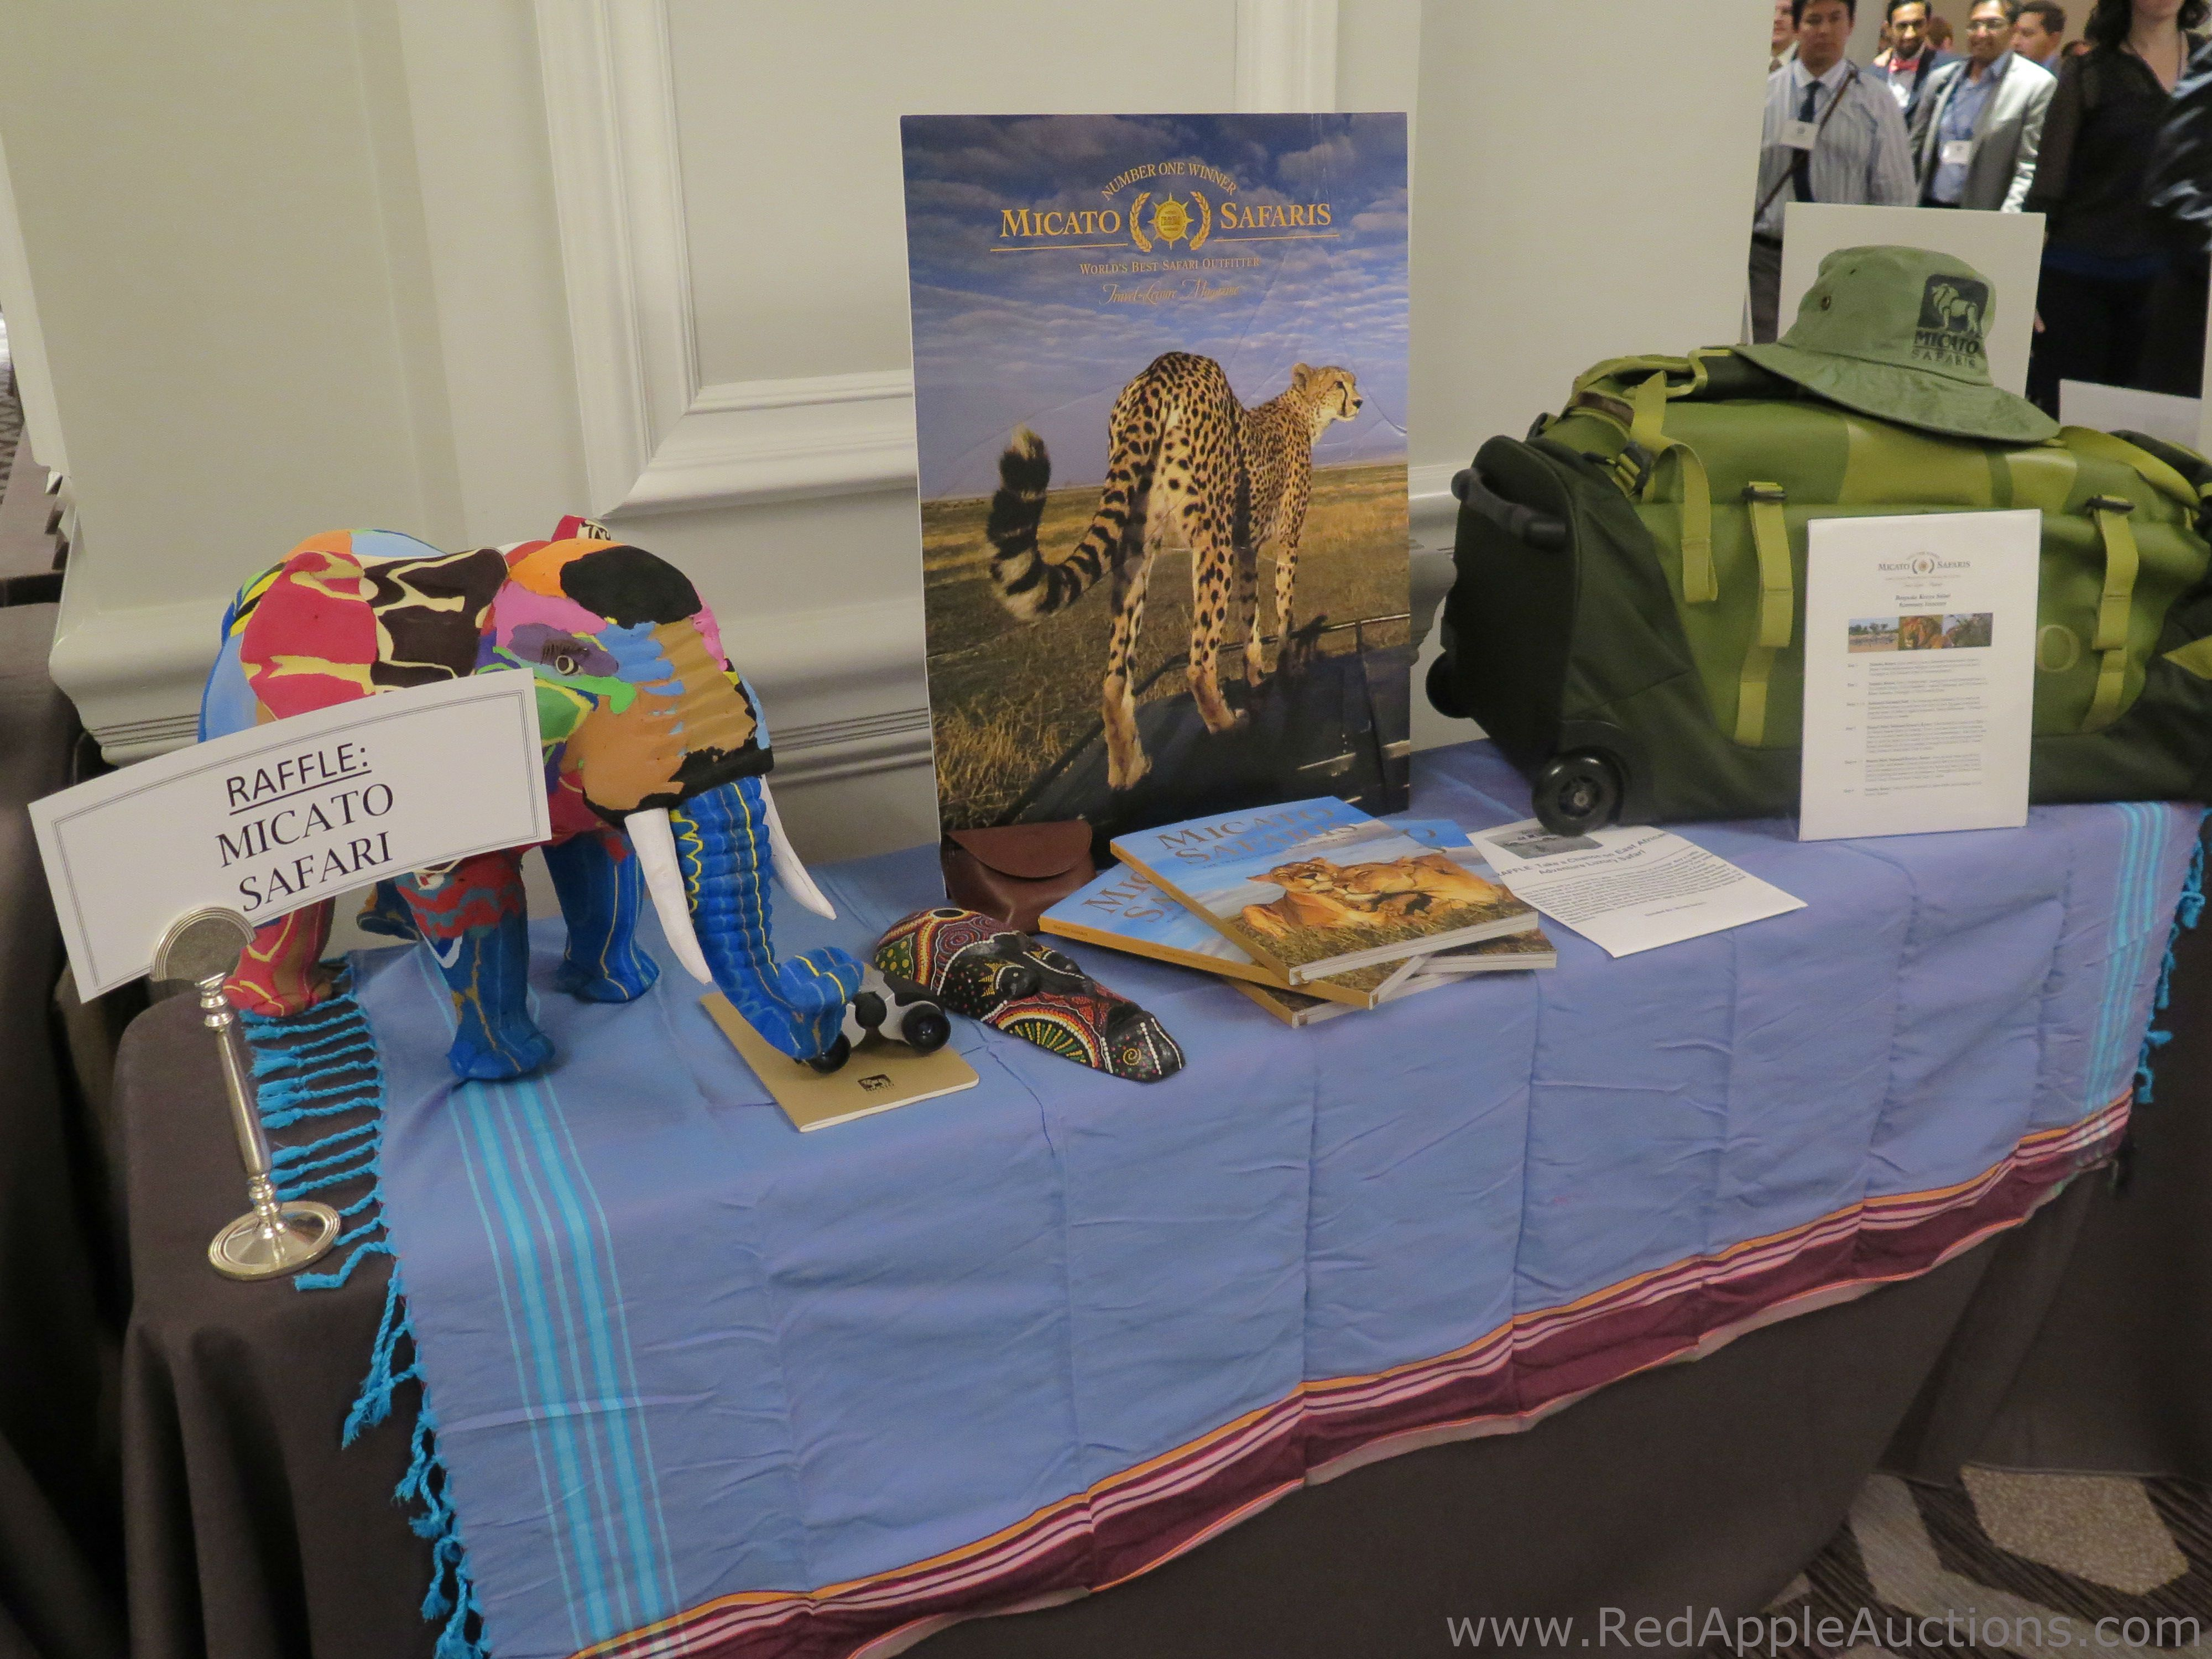 Auction raffle: A high-end safari in Africa quickly sold out of all the tickets we had offered at this nonprofit gala.